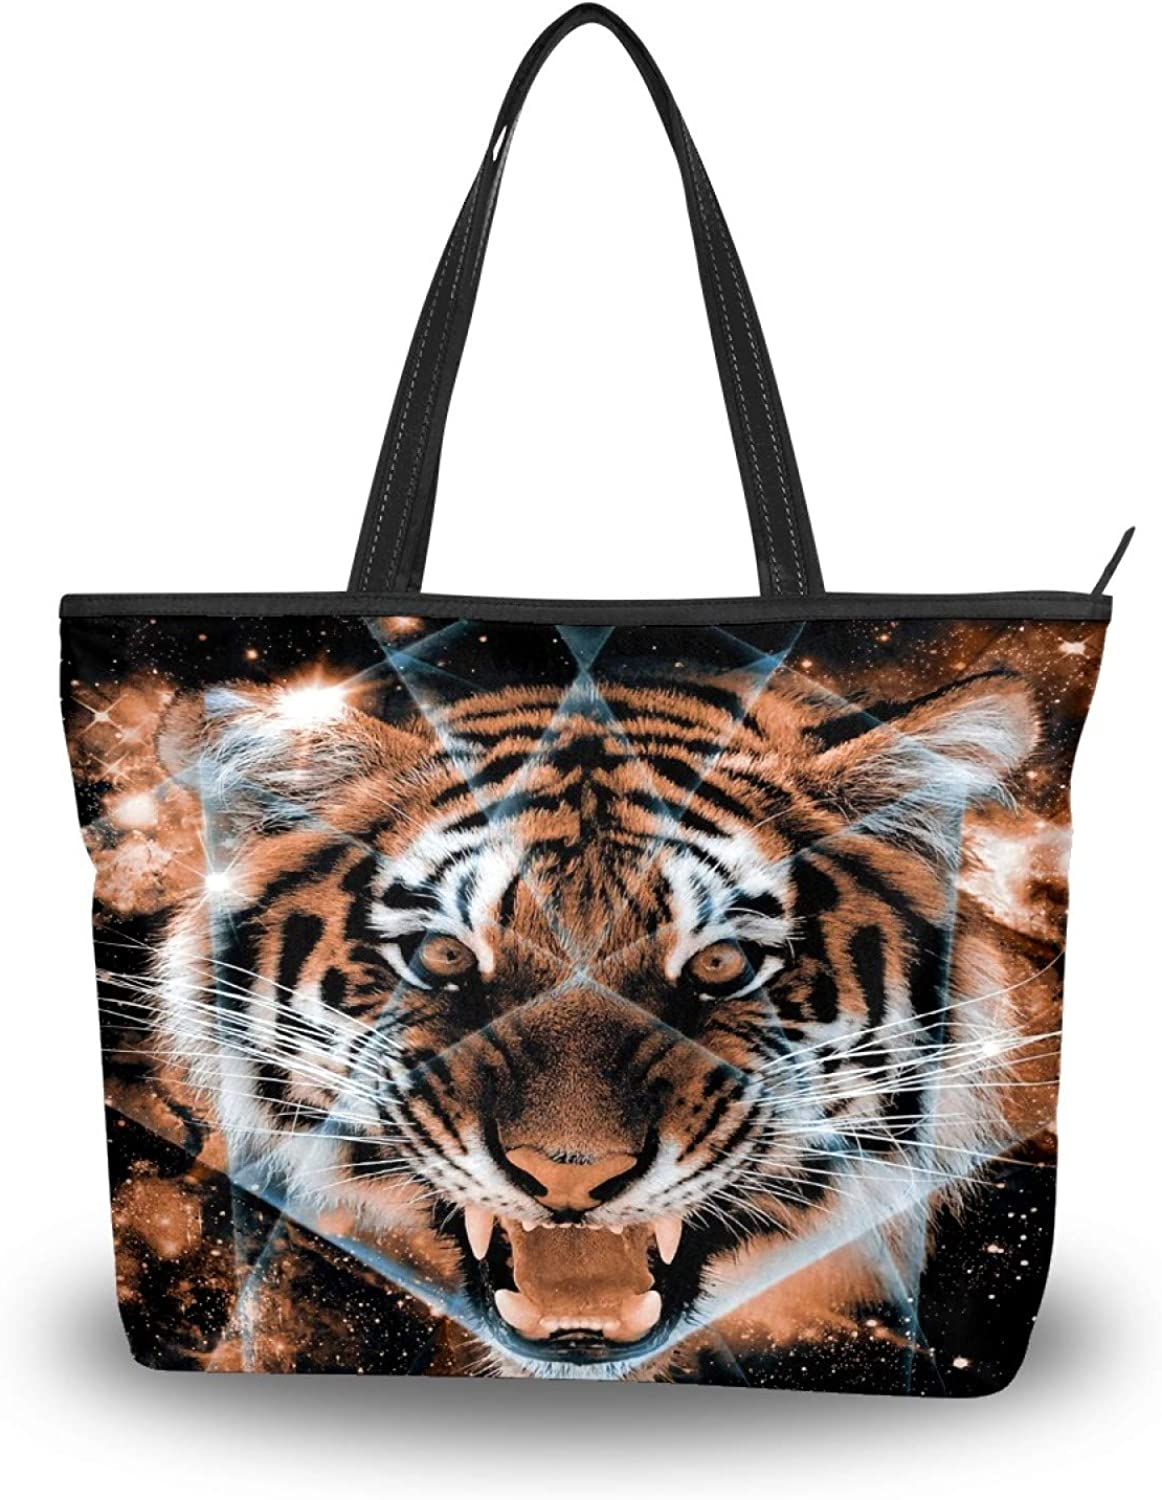 50 Cent Tiger Face Tote Bag Lightweight Detroit Mall Shoulde Excellence Women Polyester